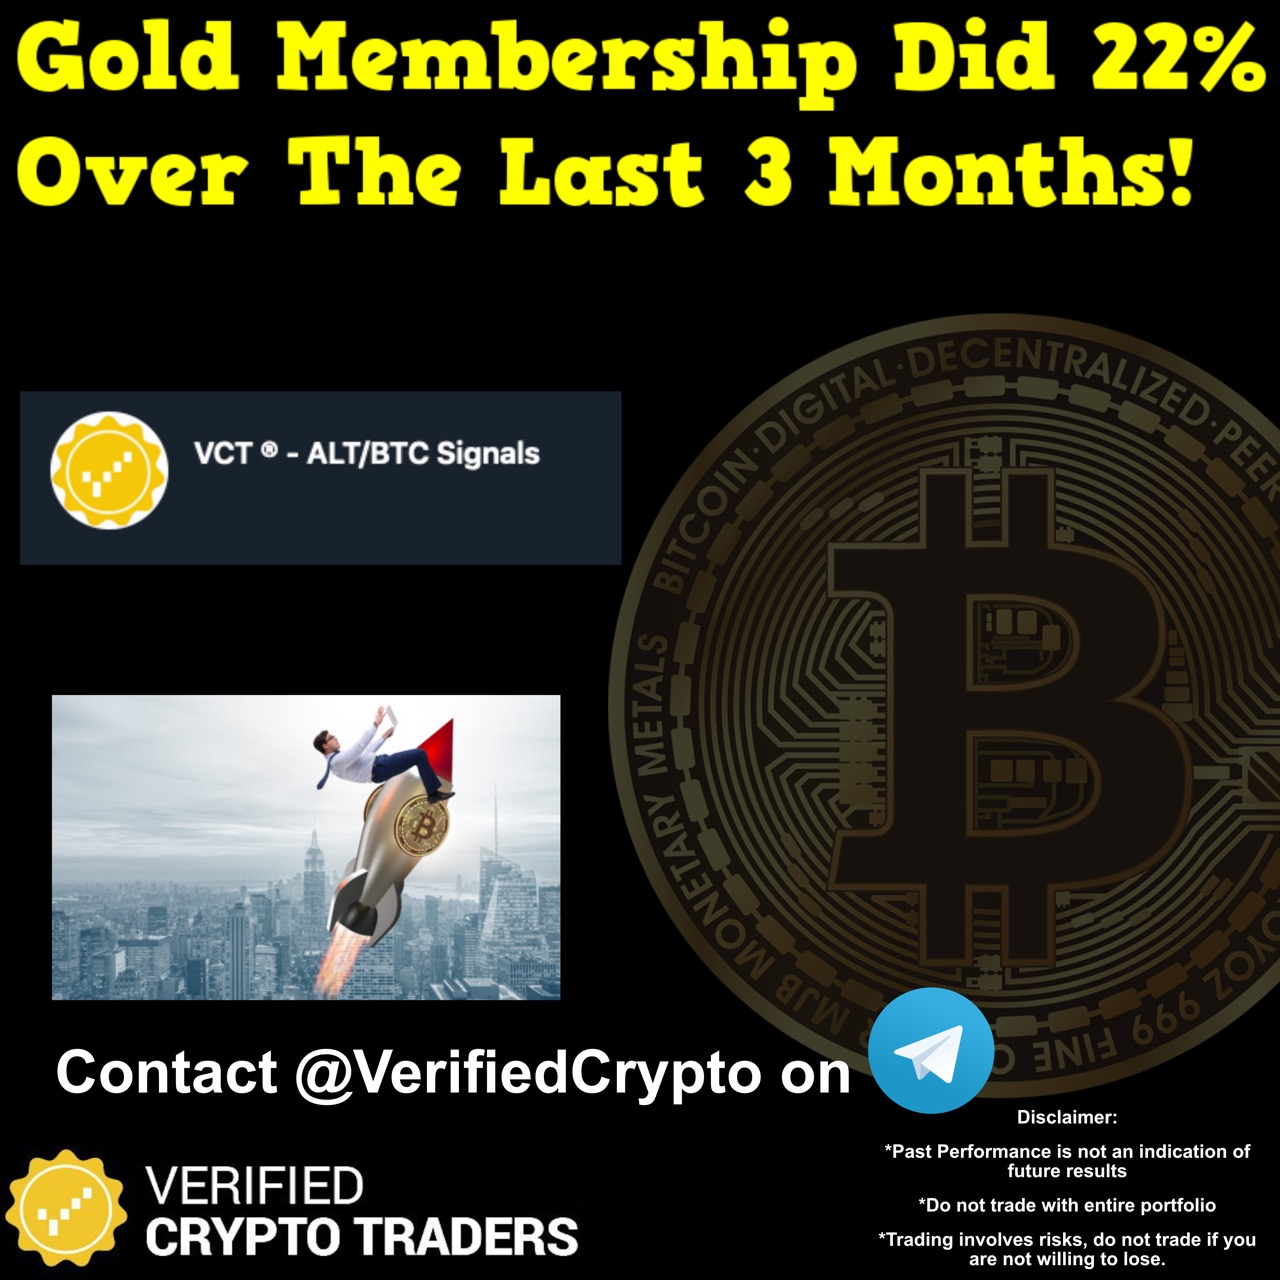 Our Signals Did 22% Over The Last 3 Months!